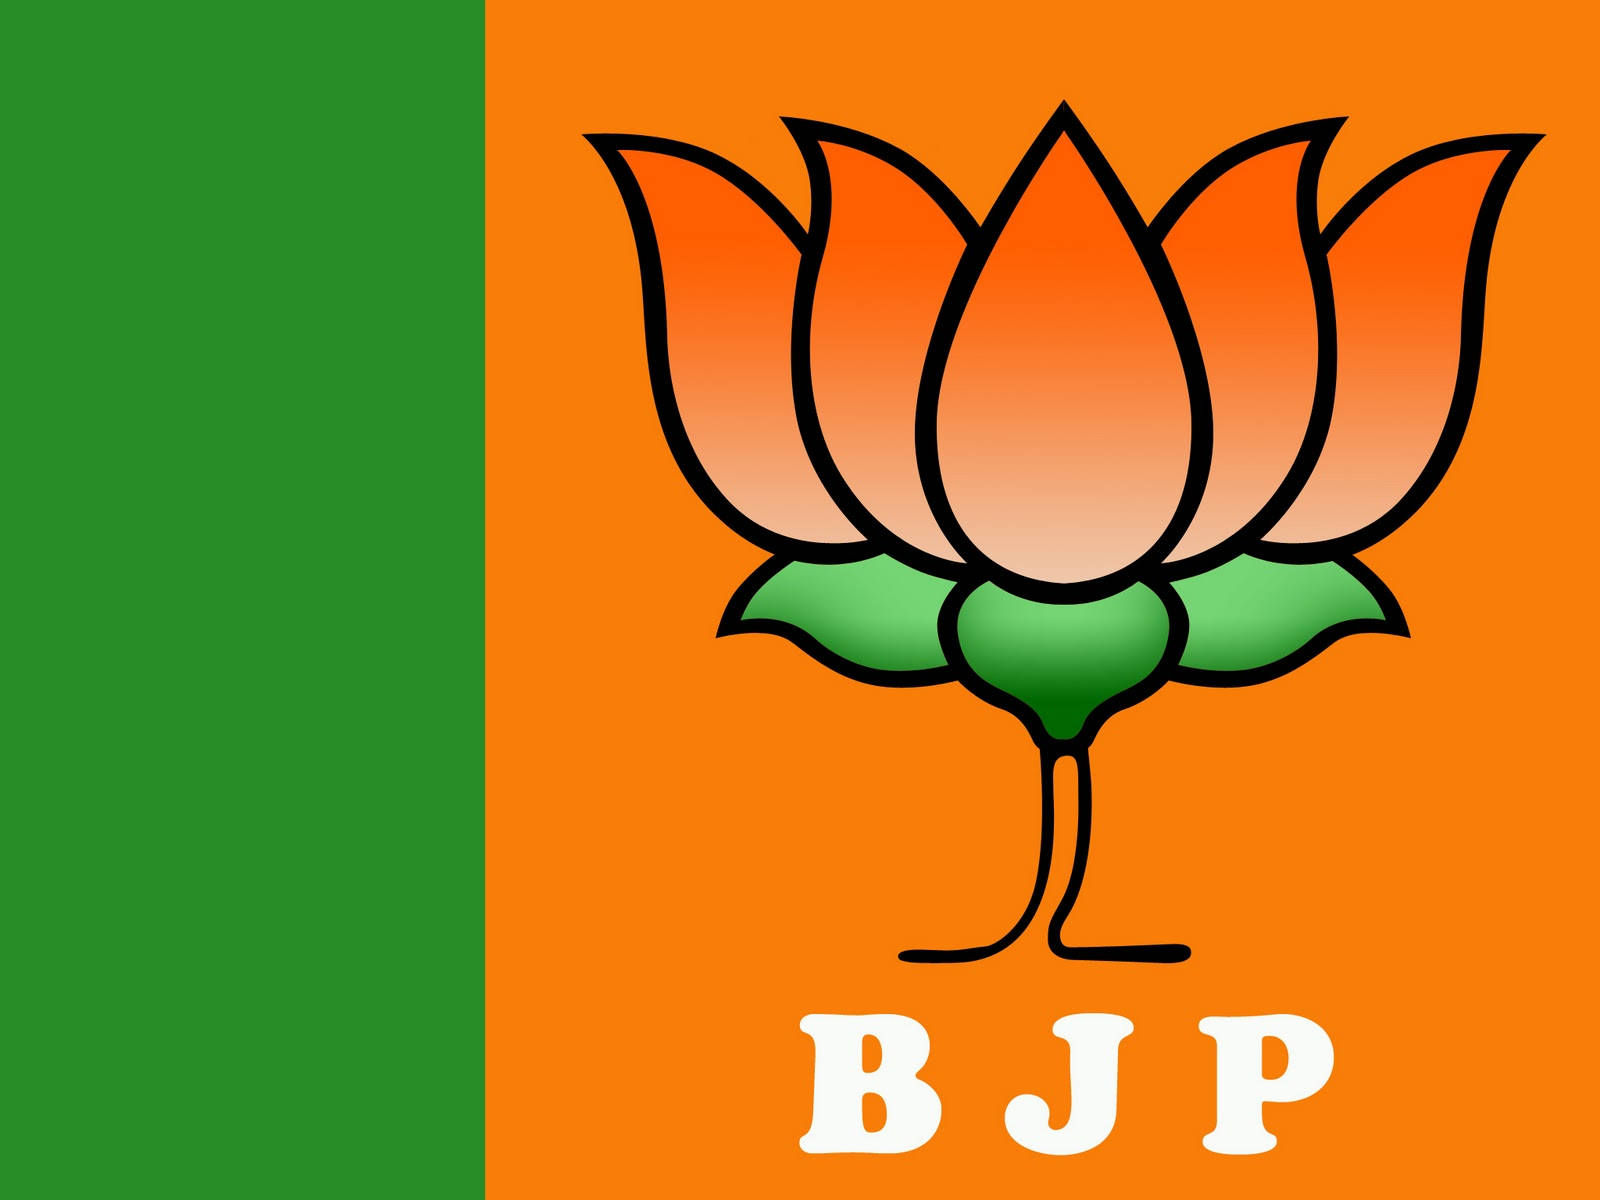 Arunachal Pradesh: BJP leading in 13 assembly seats